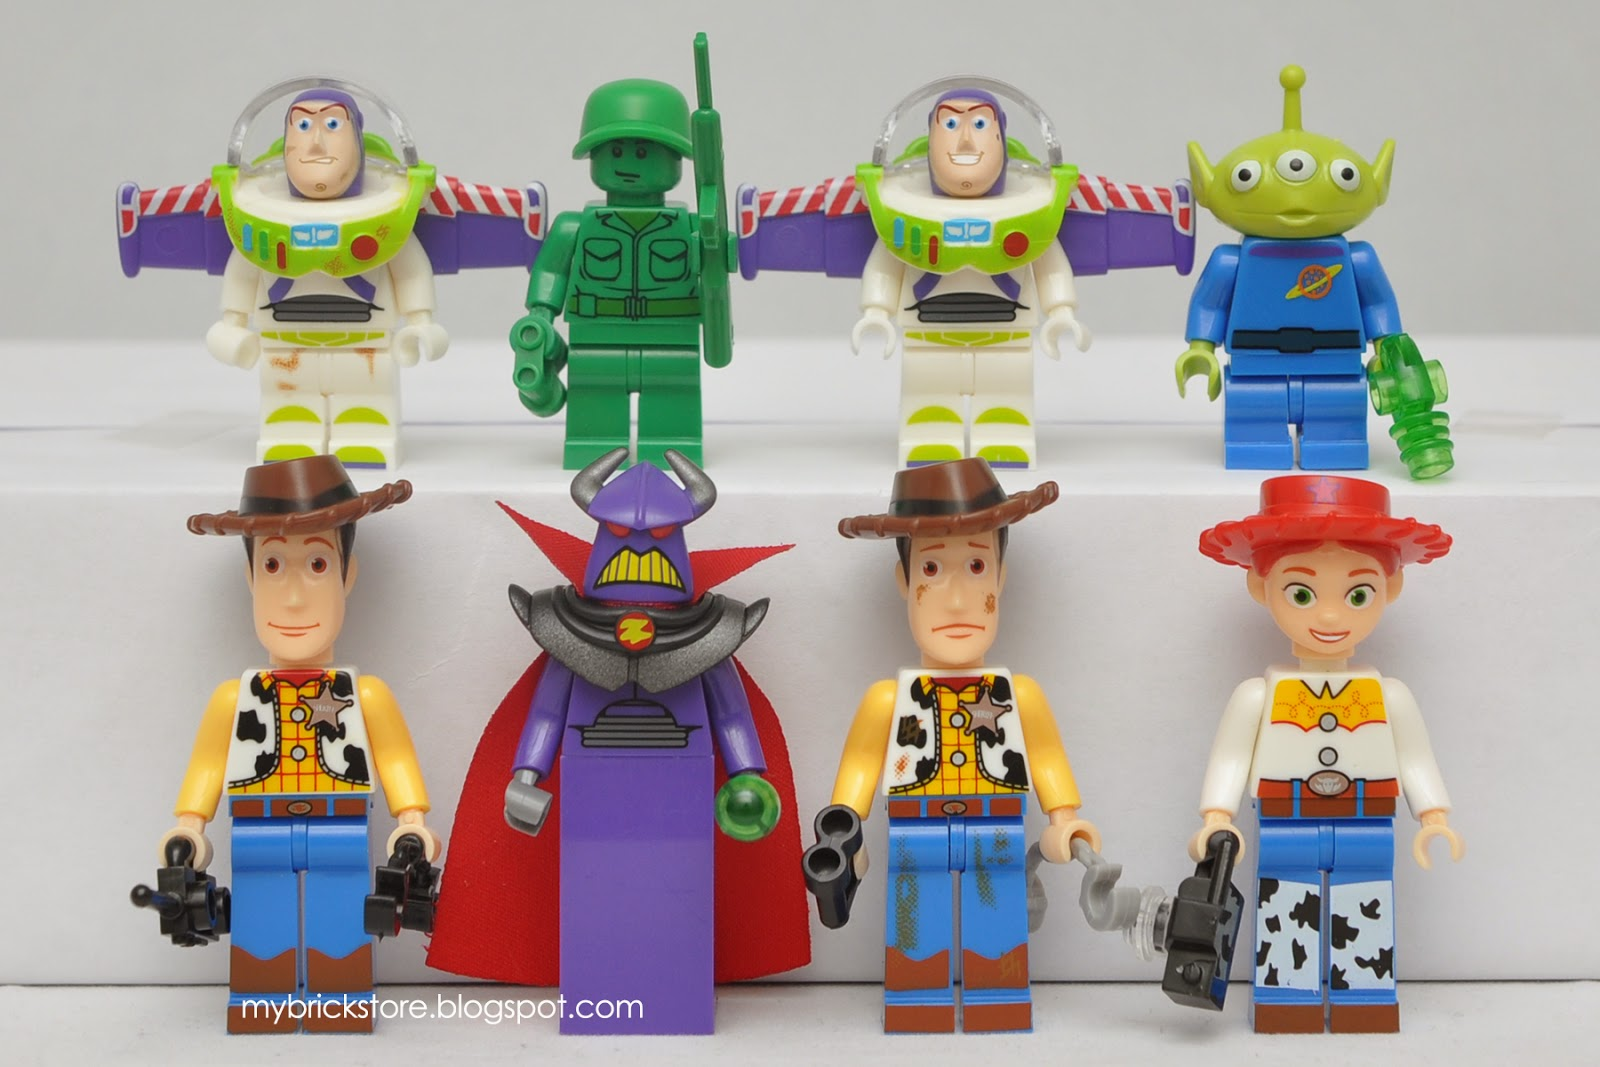 toys lego figures characters - photo #2